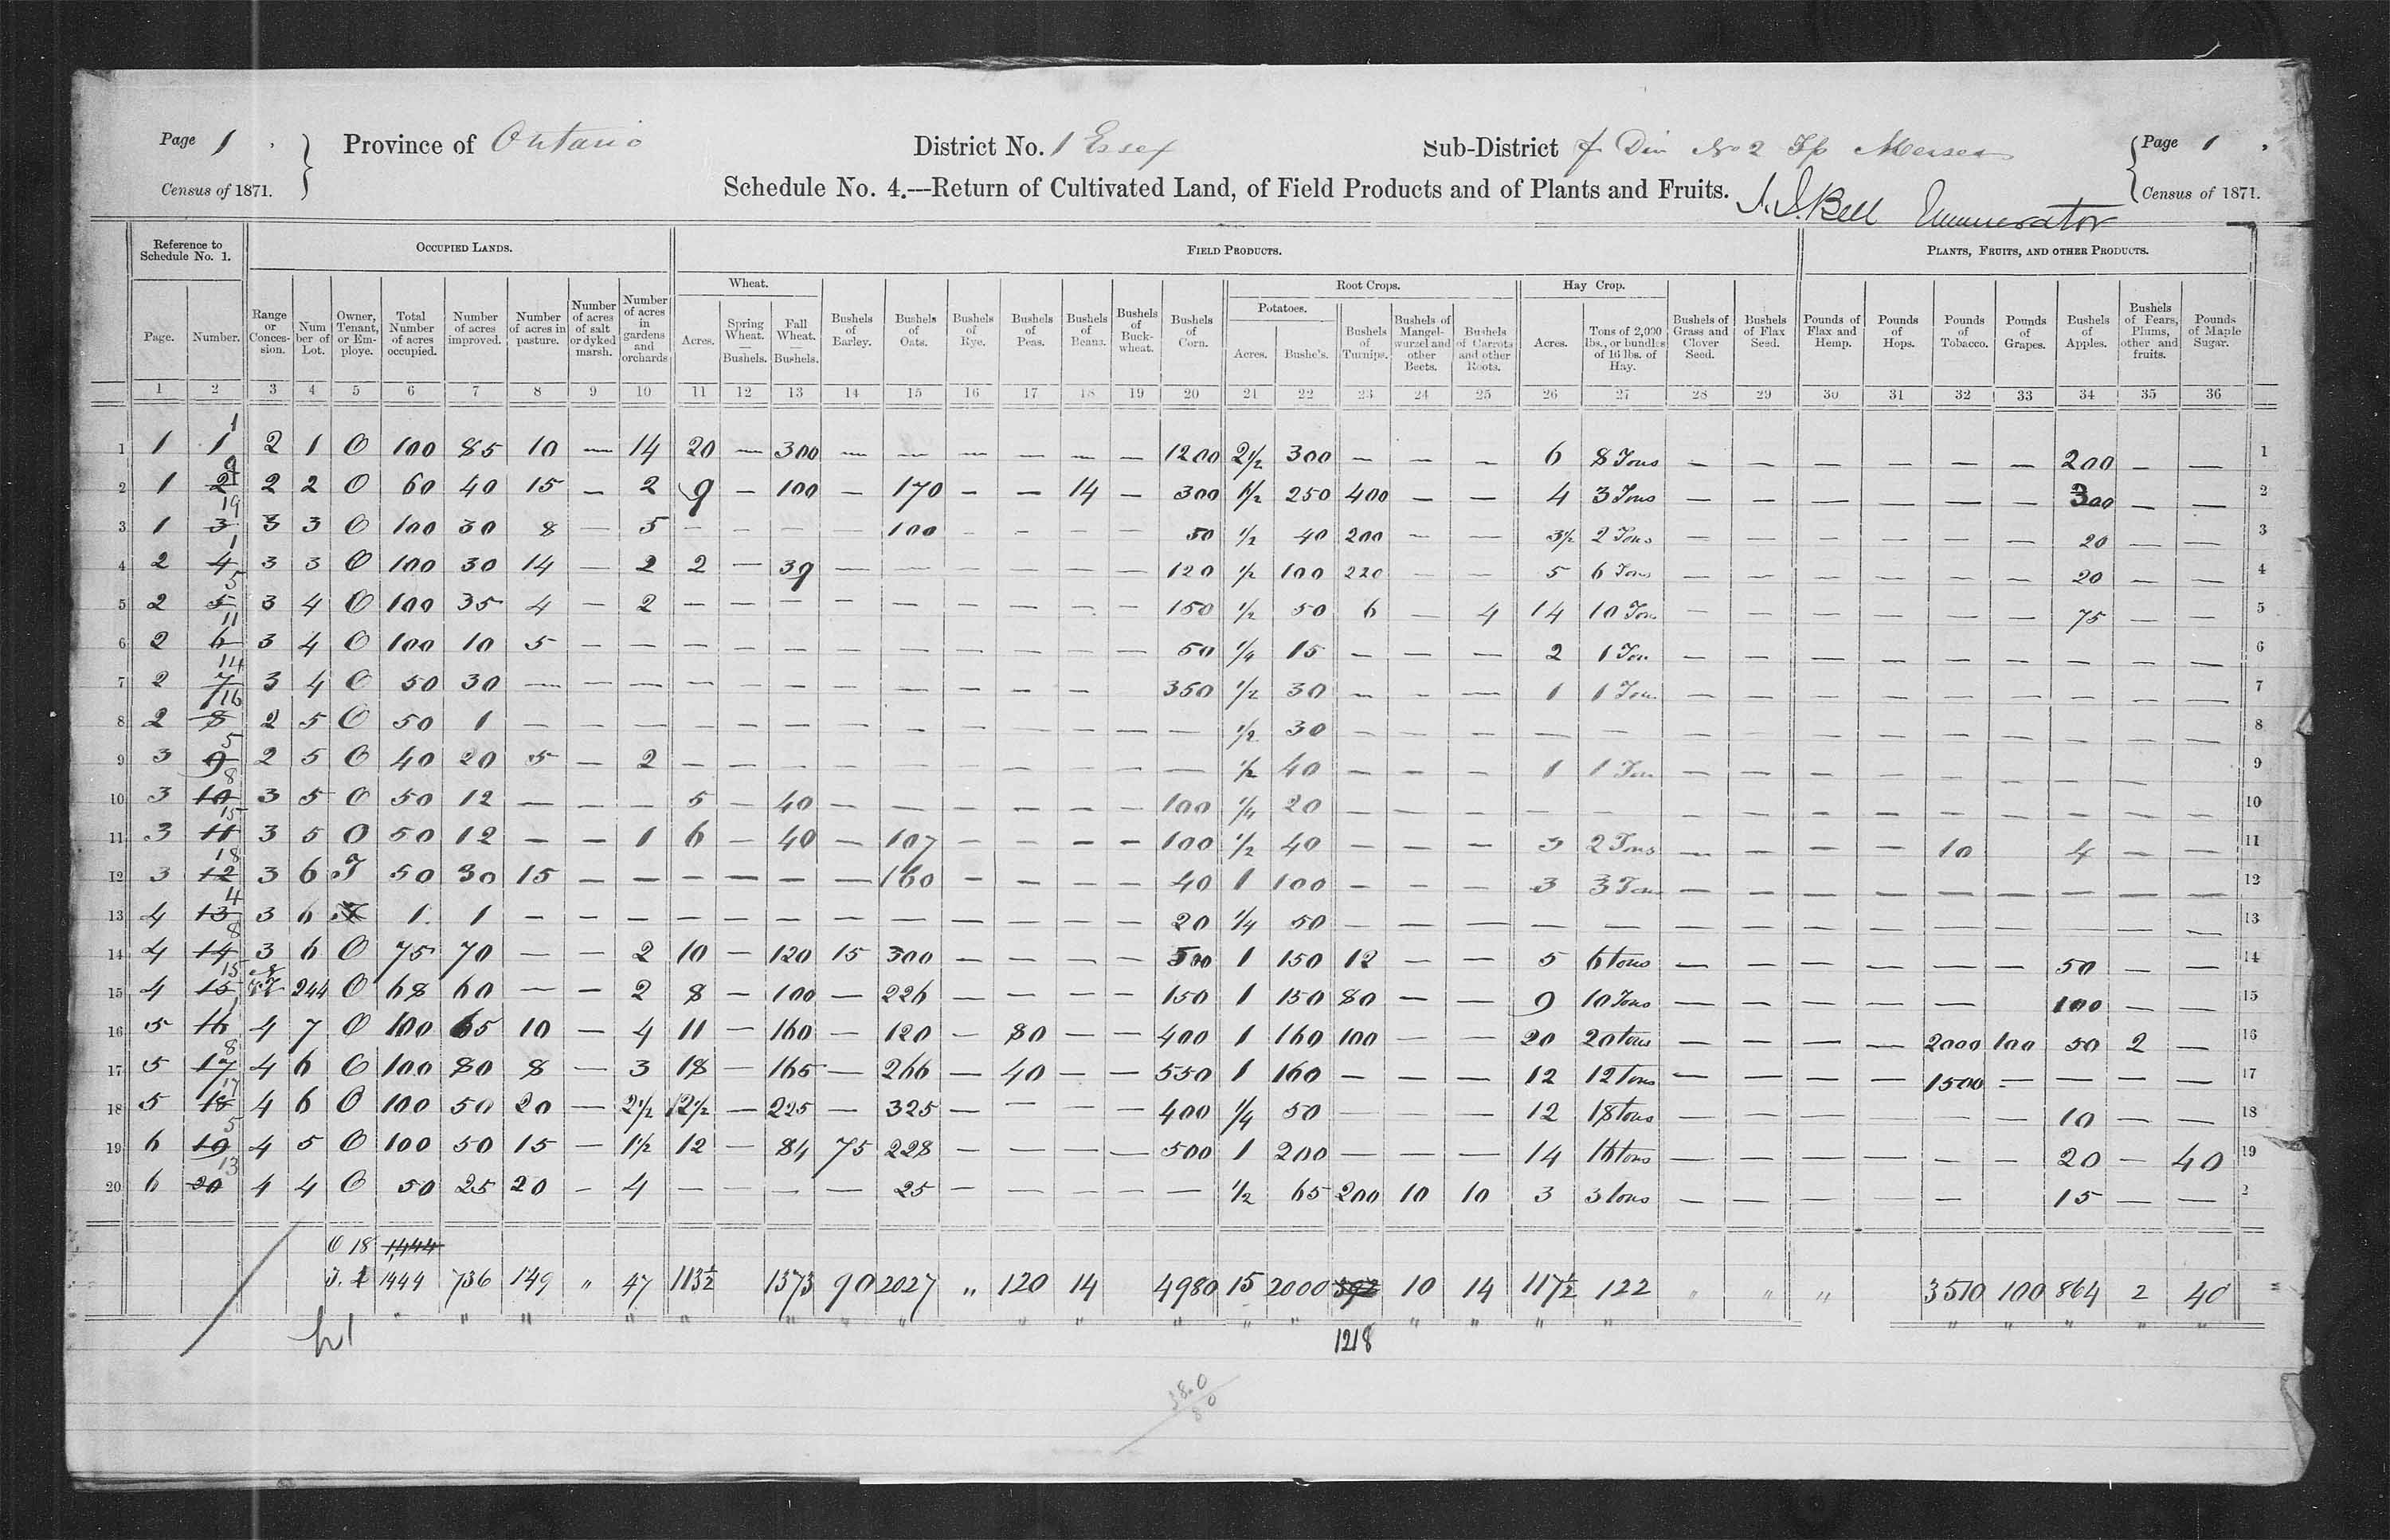 Title: Census of Canada, 1871 - Mikan Number: 142105 - Microform: c-9889